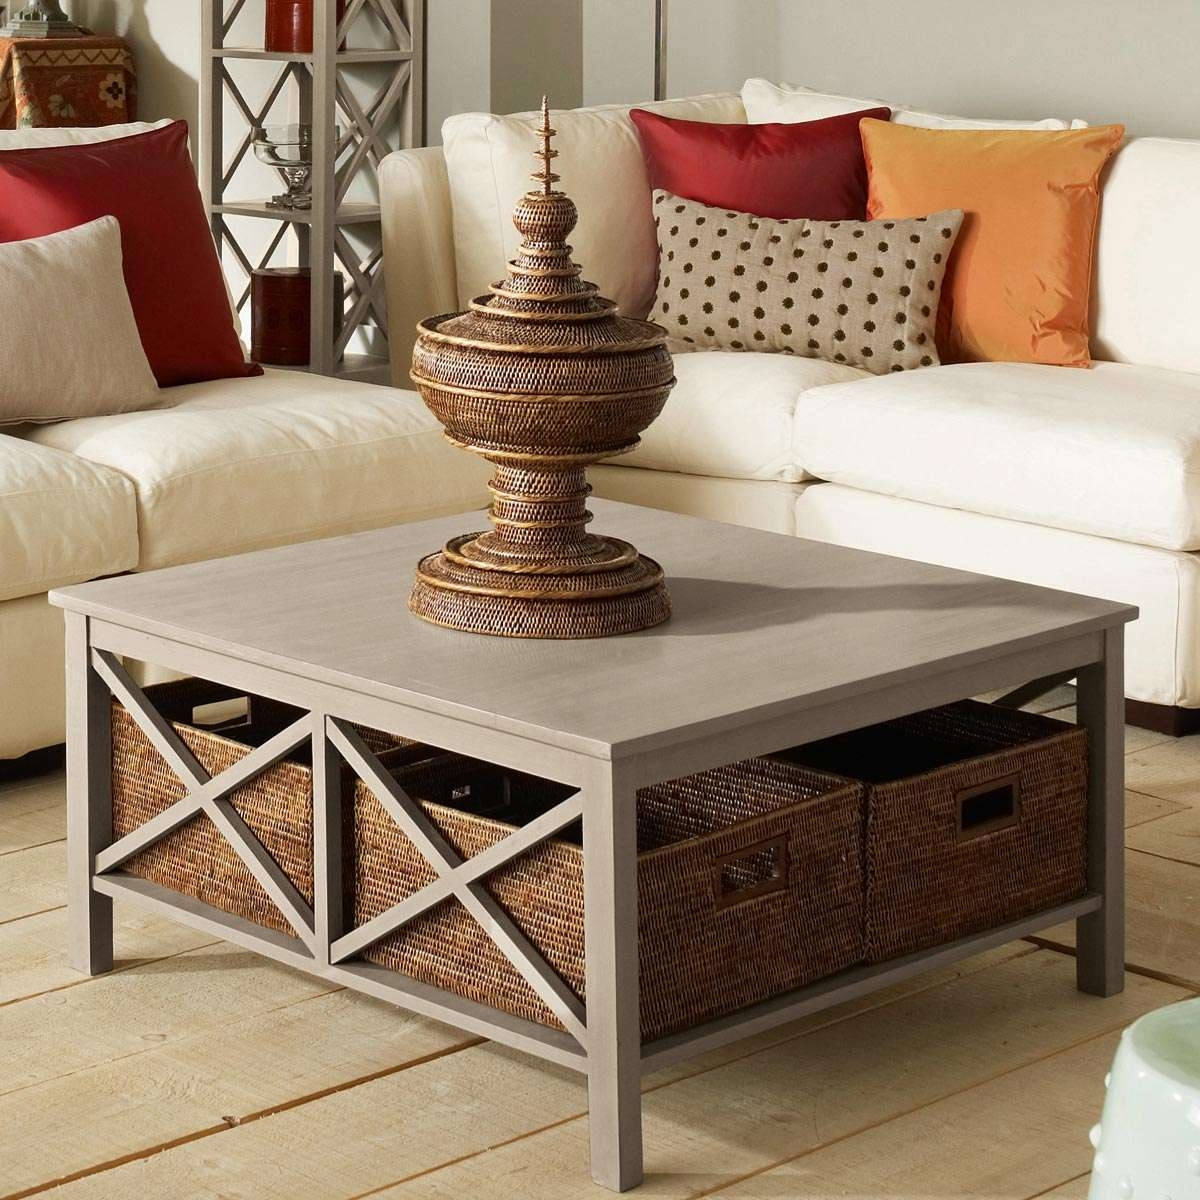 Current Large Square Coffee Tables Throughout Excellent Square Coffee Tables With Storage Pictures Decoration (View 16 of 20)